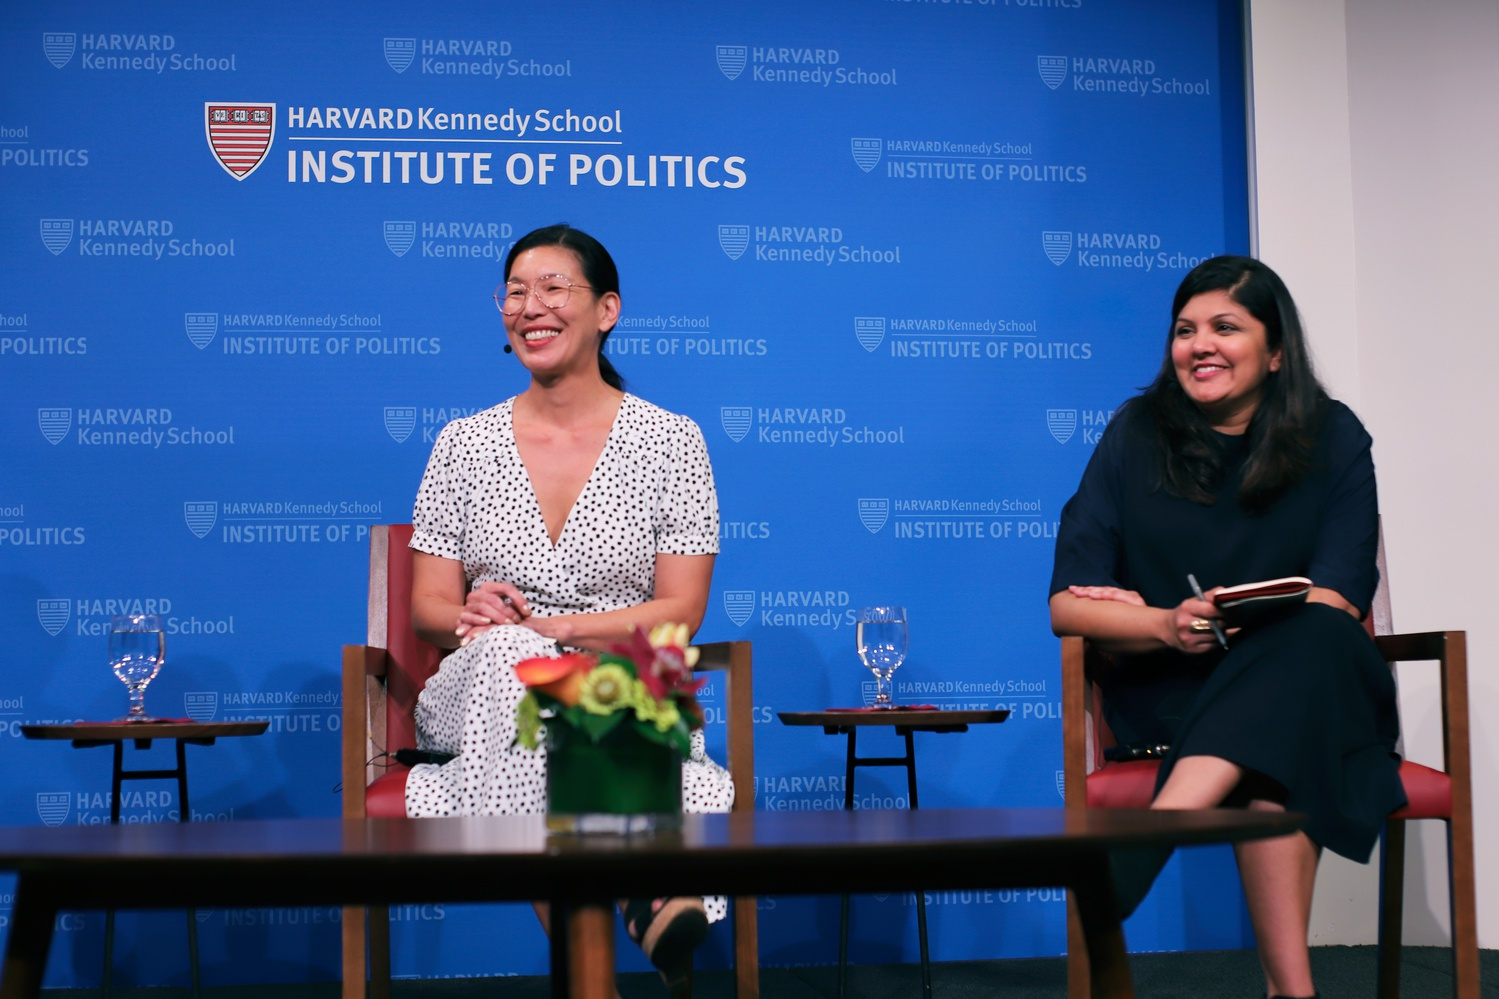 """Brittany Butler, the executive director of the Social Innovation and Change Initiative at the Harvard Kennedy School moderated a discussion between Ai-Jen Poo, left, the co-founder and executive director of the National Domestic Workers Alliance, and Palak Shah, right, the founding director and social innovation lab director at NDWA. Poo and Shah discussed domestic work as the original """"gig economy"""" and talked about the importance of intersectionality."""